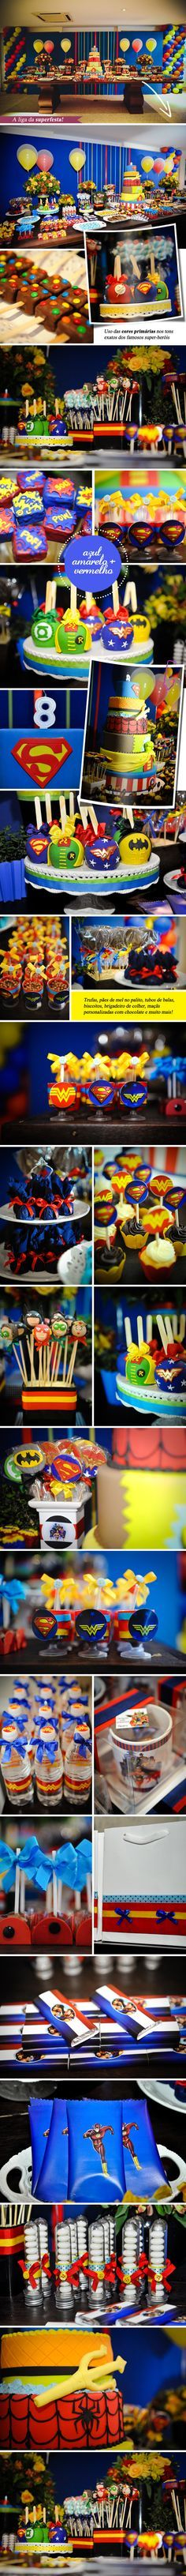 Superheroes Theme - Oh my wow! Look at that table. That's one amazing food…